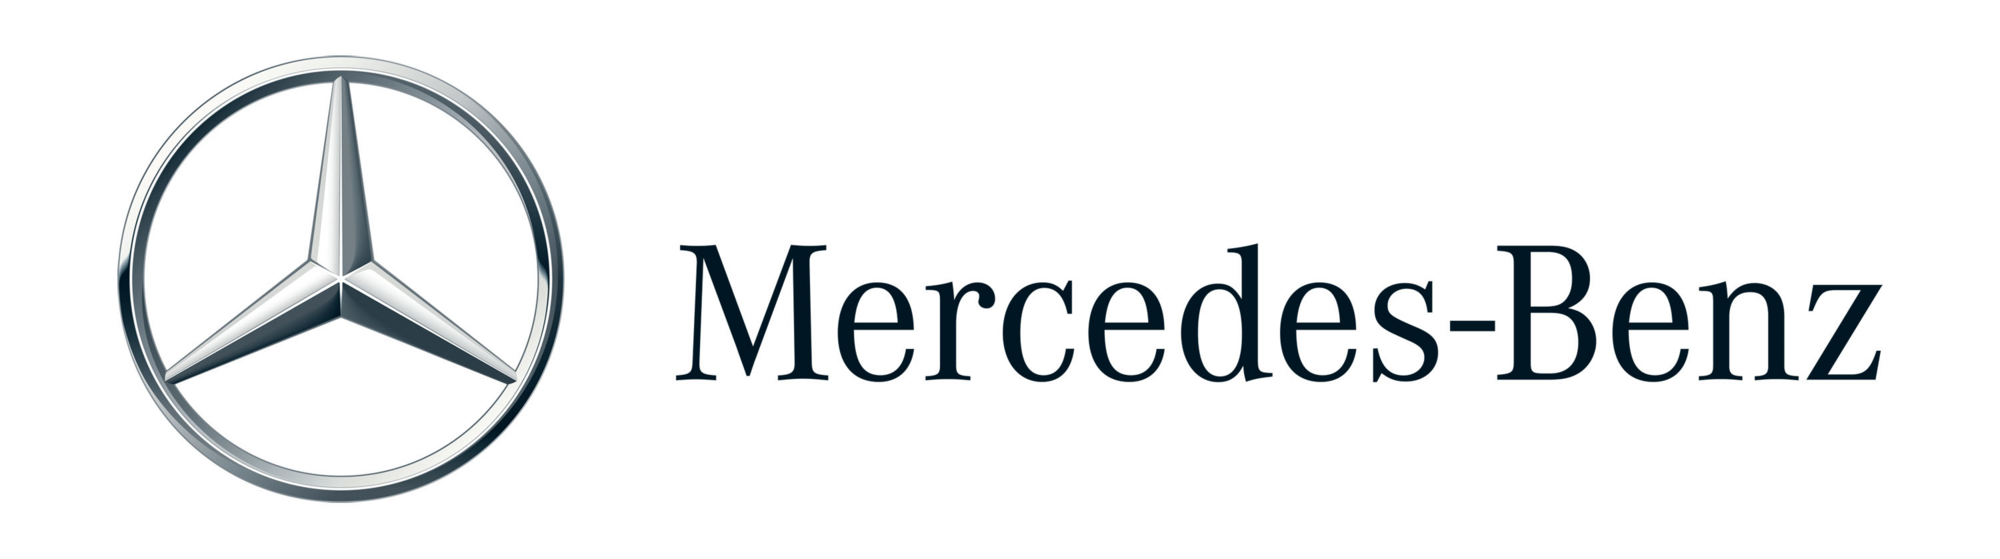 mercedes benz logo png. image mercedesbenzlogopng real racing 3 wiki fandom powered by wikia mercedes benz logo png e